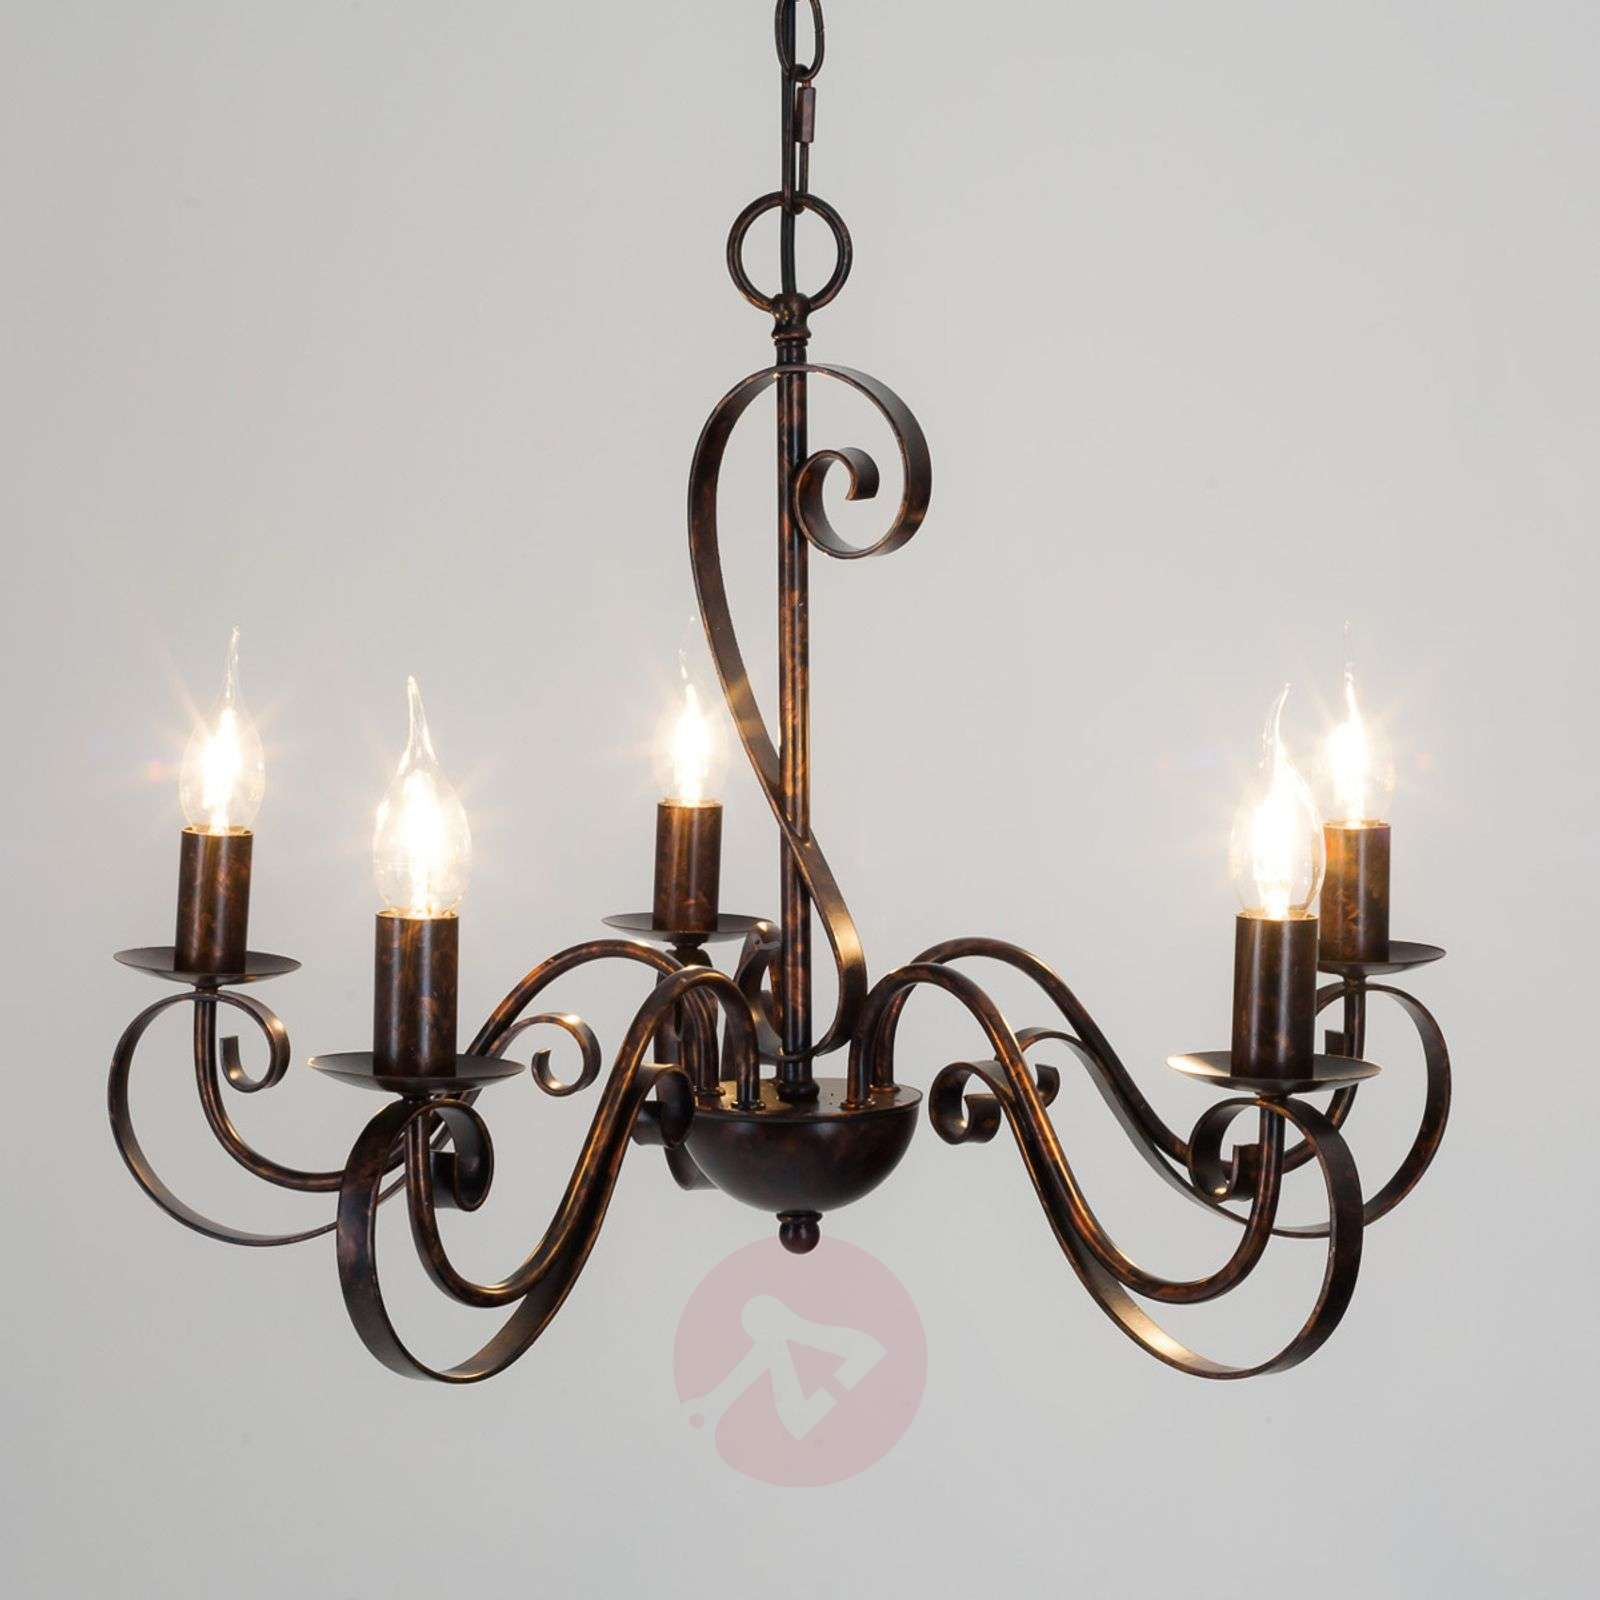 5 light rust coloured chandelier caleb lights 5 light rust coloured chandelier caleb 9620530 01 aloadofball Image collections